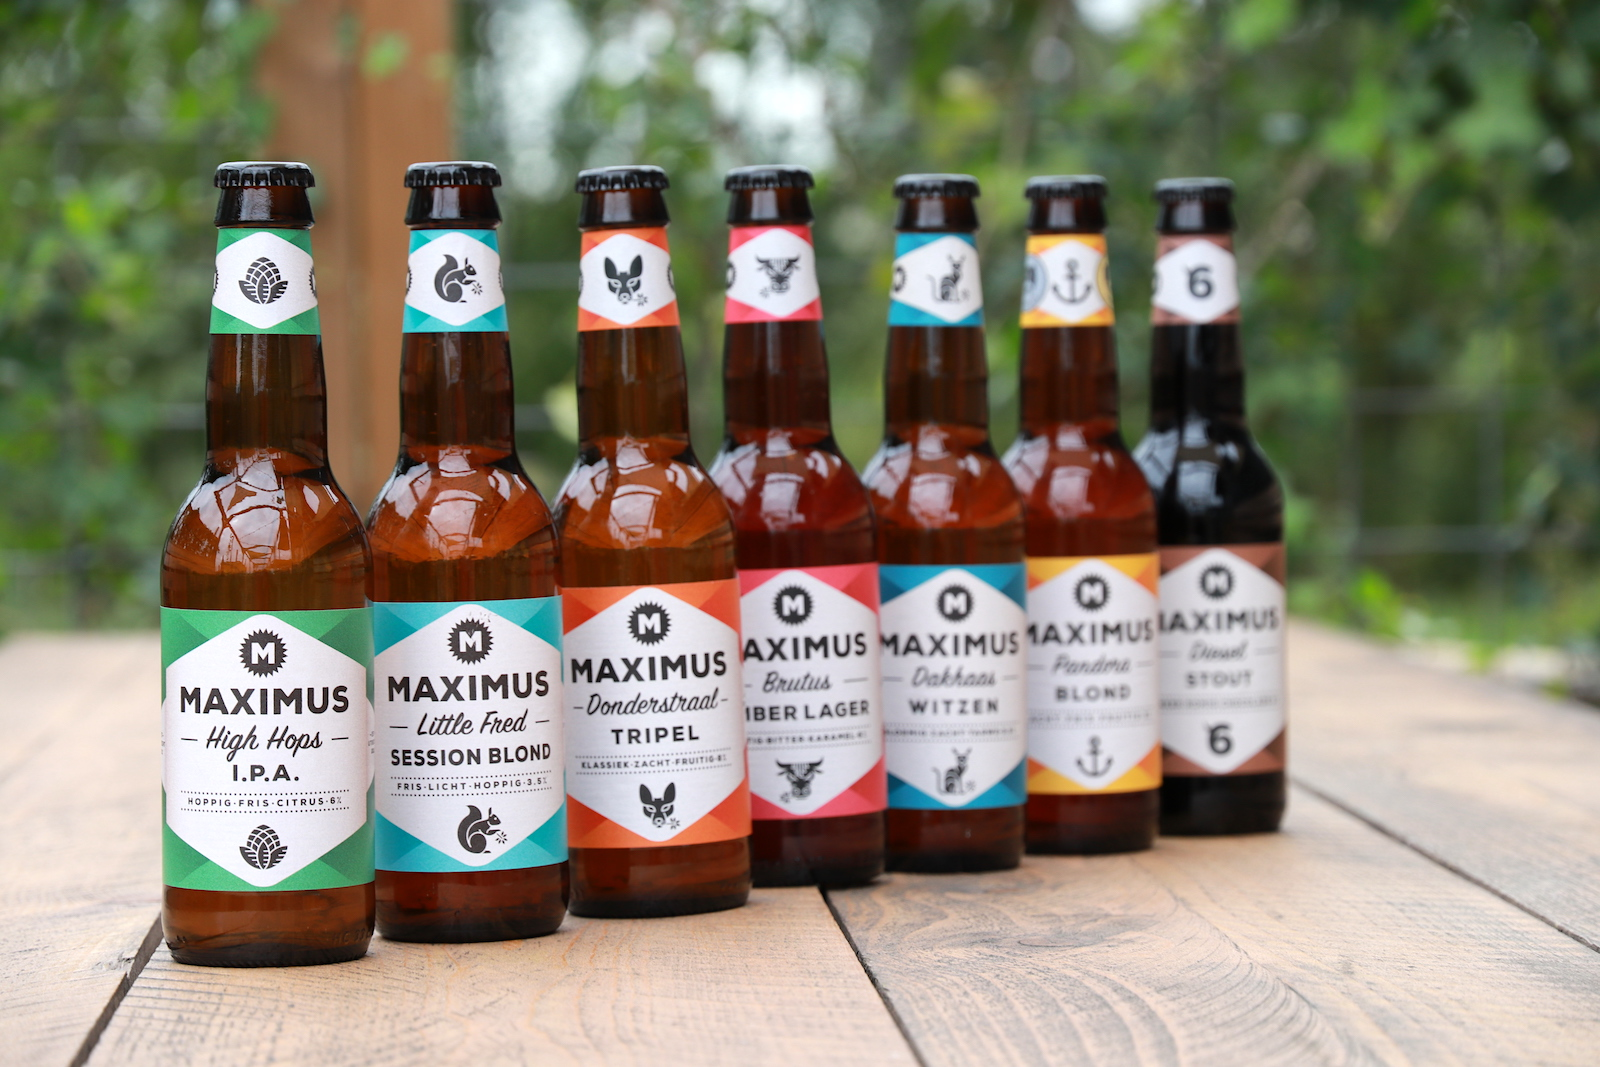 Core range of Brouwerij Maximus